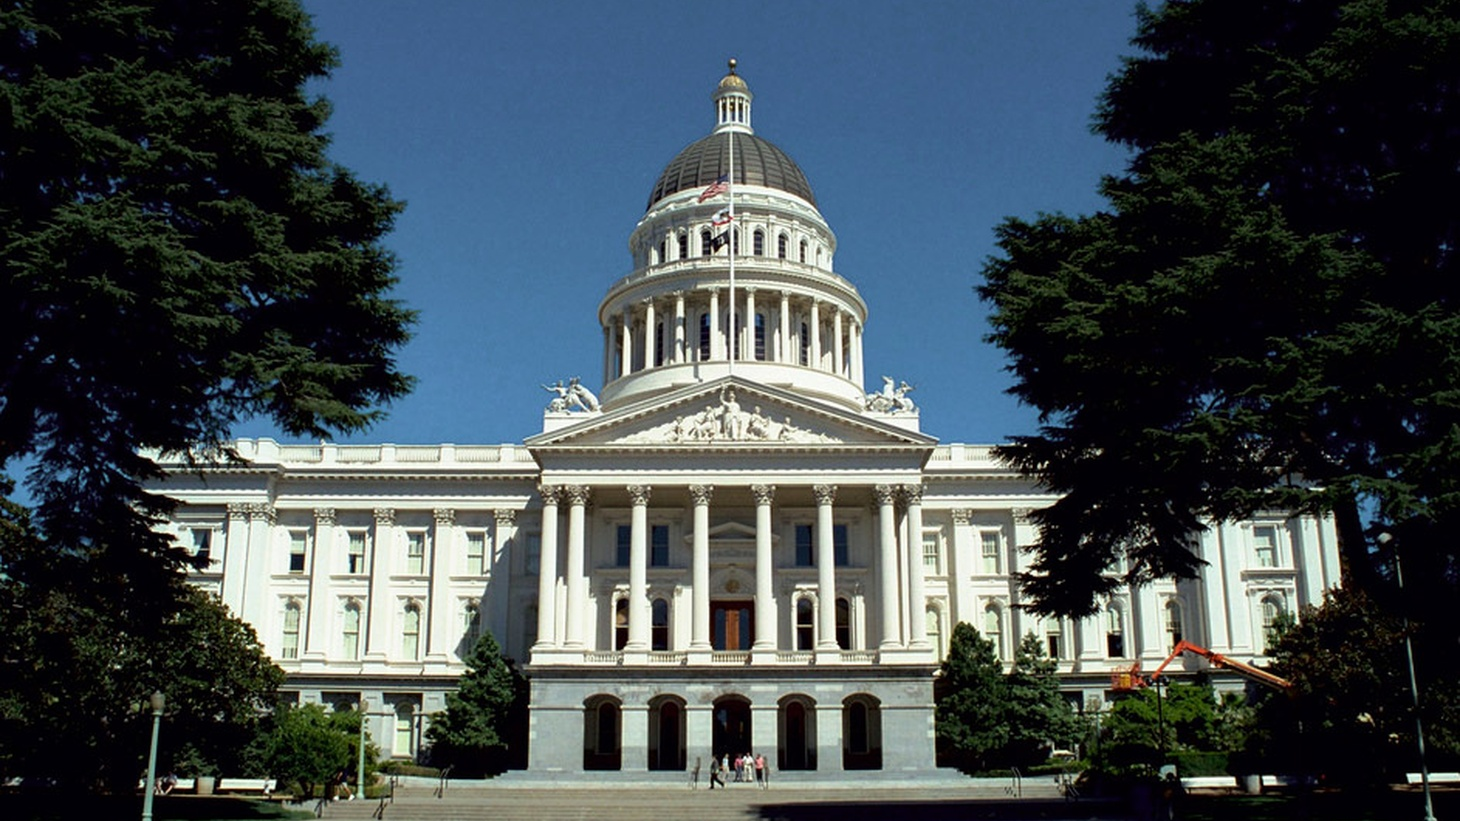 KCRW's Chery Glaser talks to Republican Assemblyman Chad Mayes about how his party needs to do a better job of listening to voters and addressing their concerns if it wants to grow its clout in the Golden State.